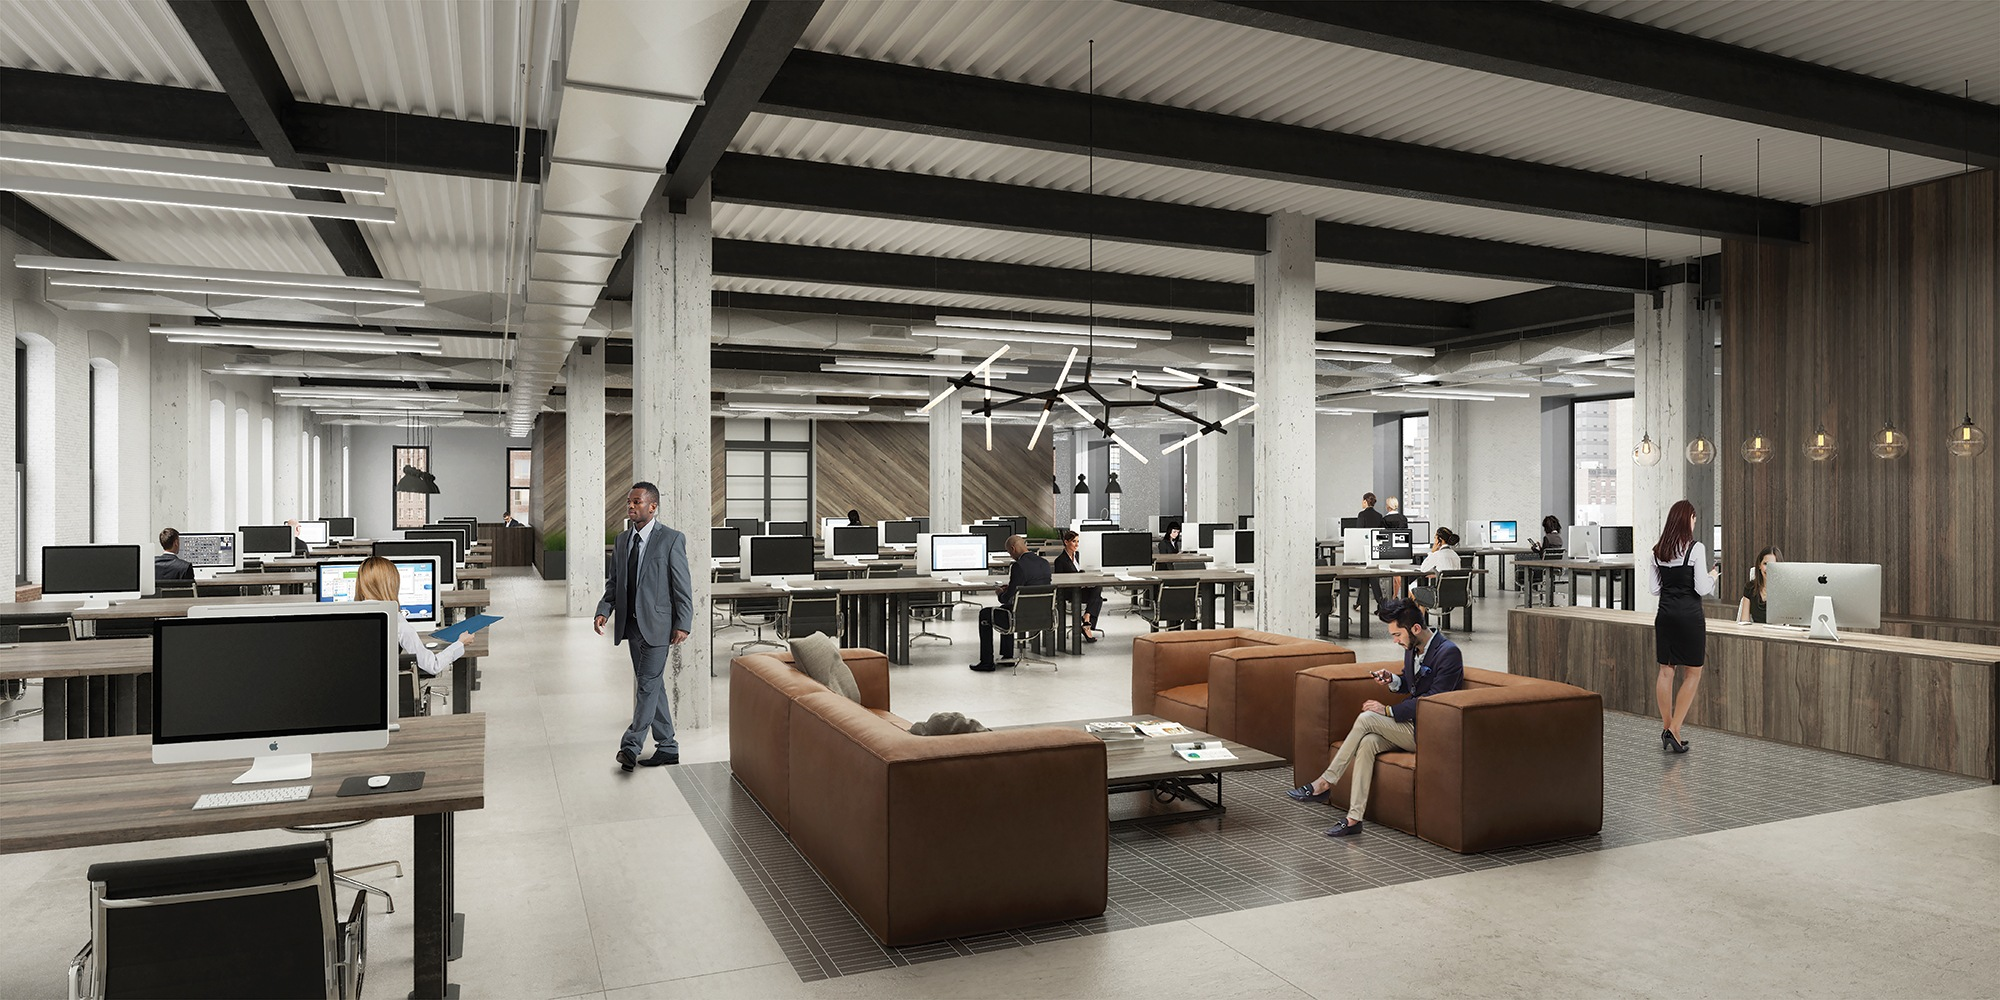 Interior Design Warehouse Morris Adjmi Reveals Design For The Warehouse Complex In Nyc